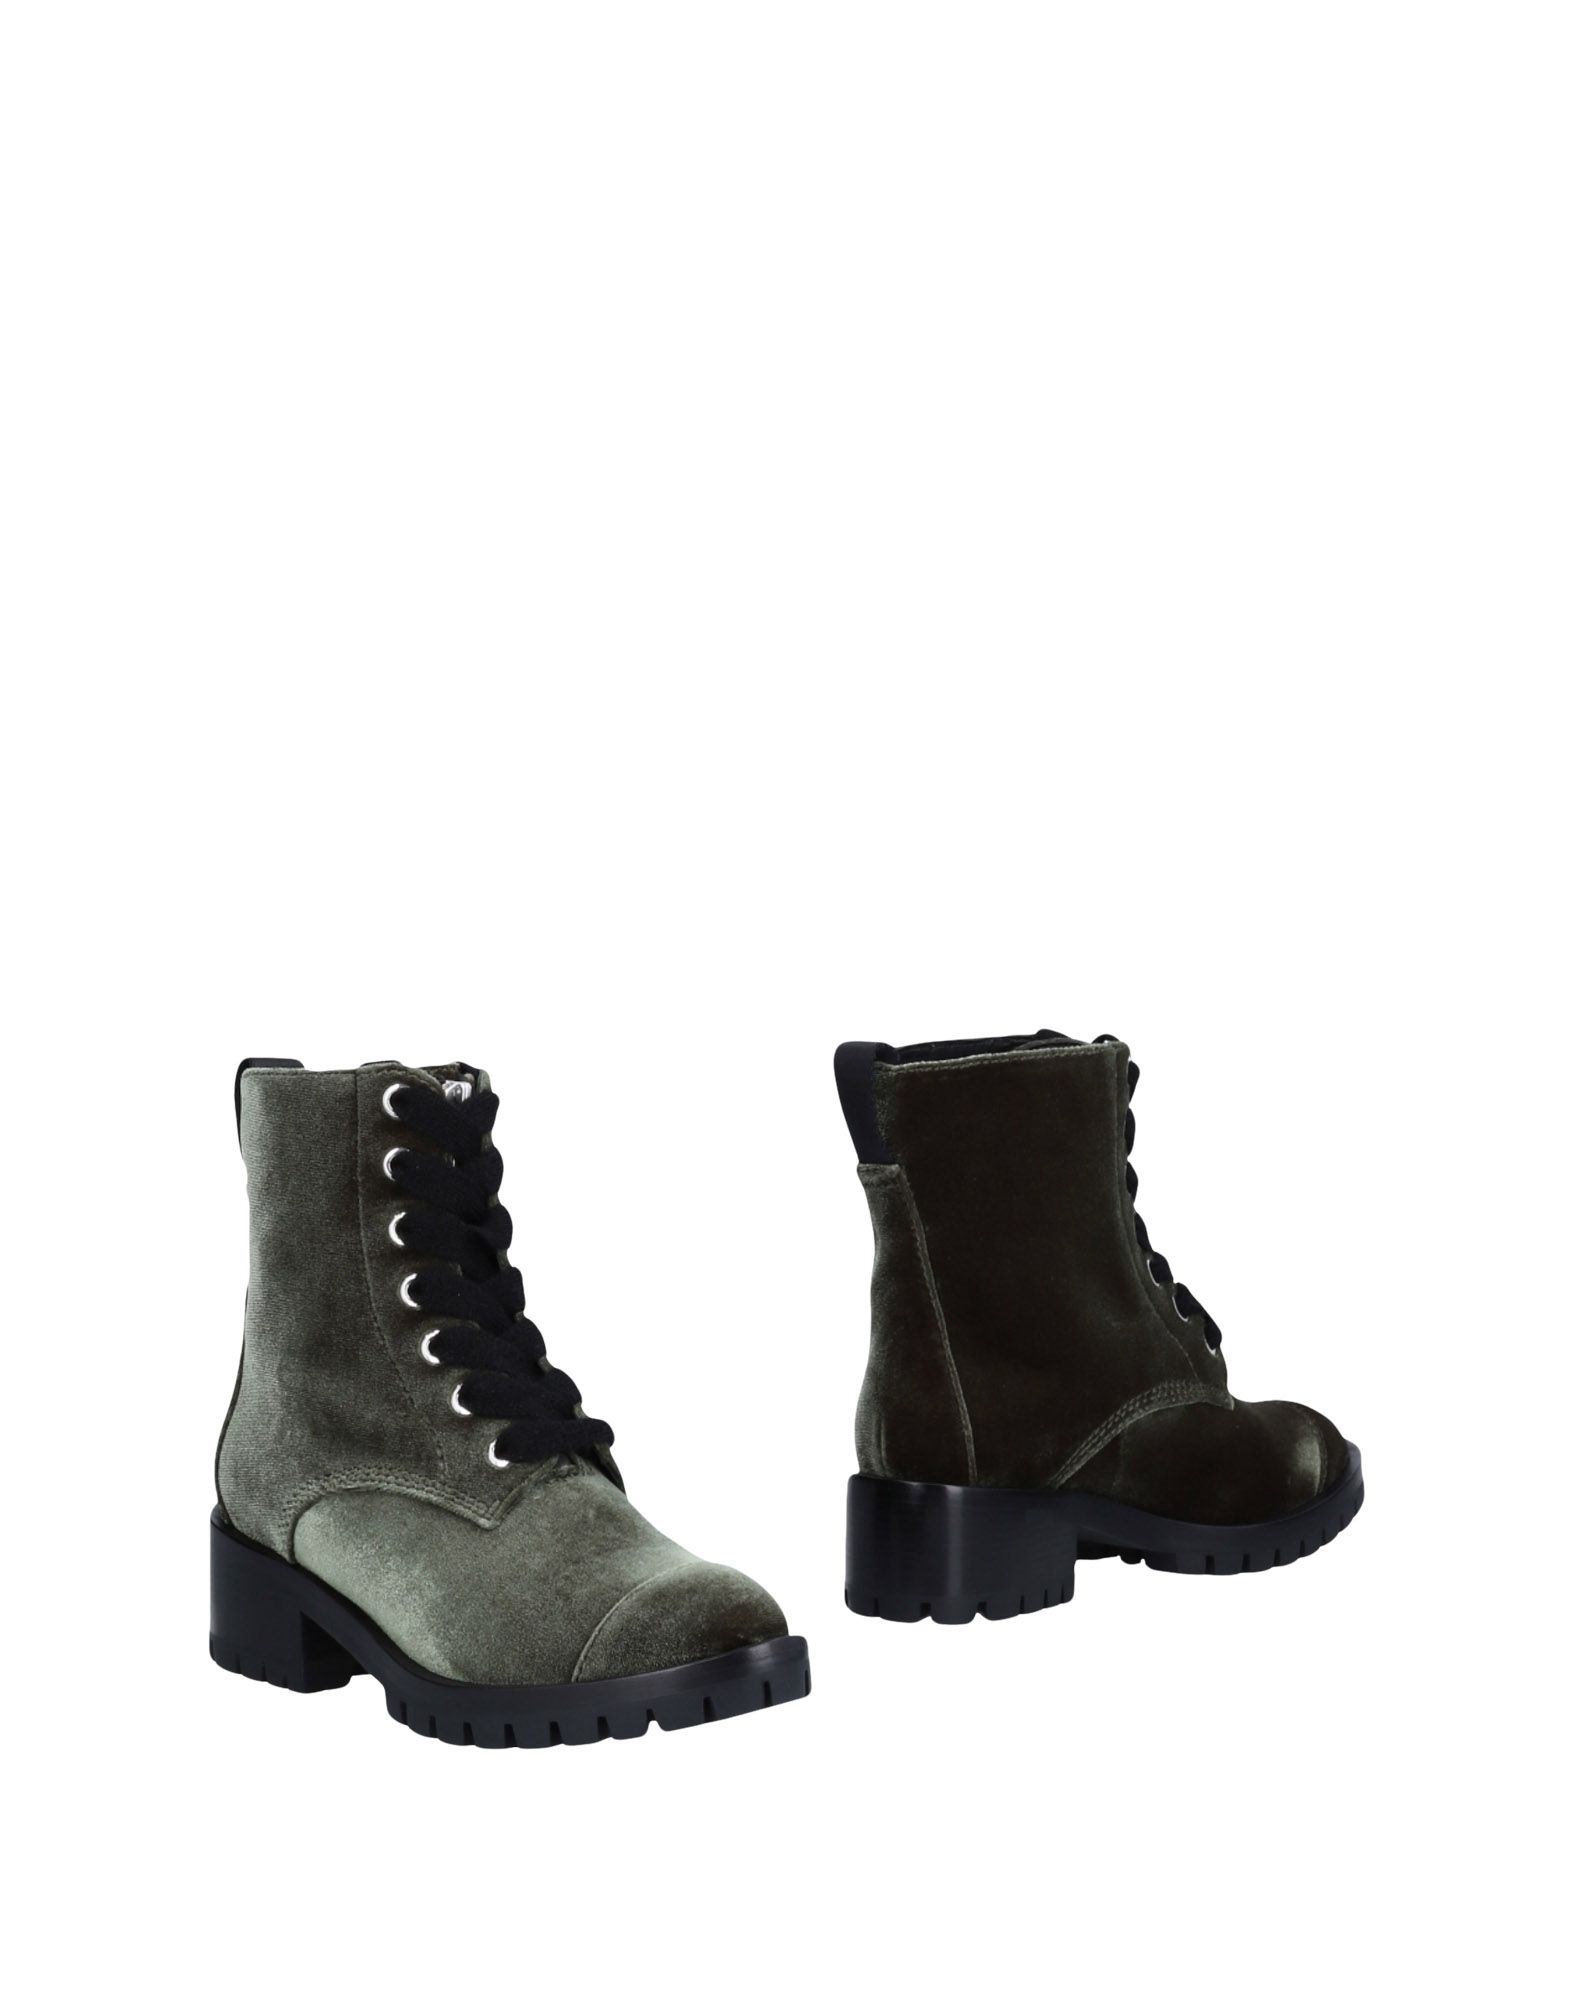 3.1 Phillip Lim Ankle Boot - Women 3.1 3.1 Women Phillip Lim Ankle Boots online on  United Kingdom - 11478716GX 9b07b4